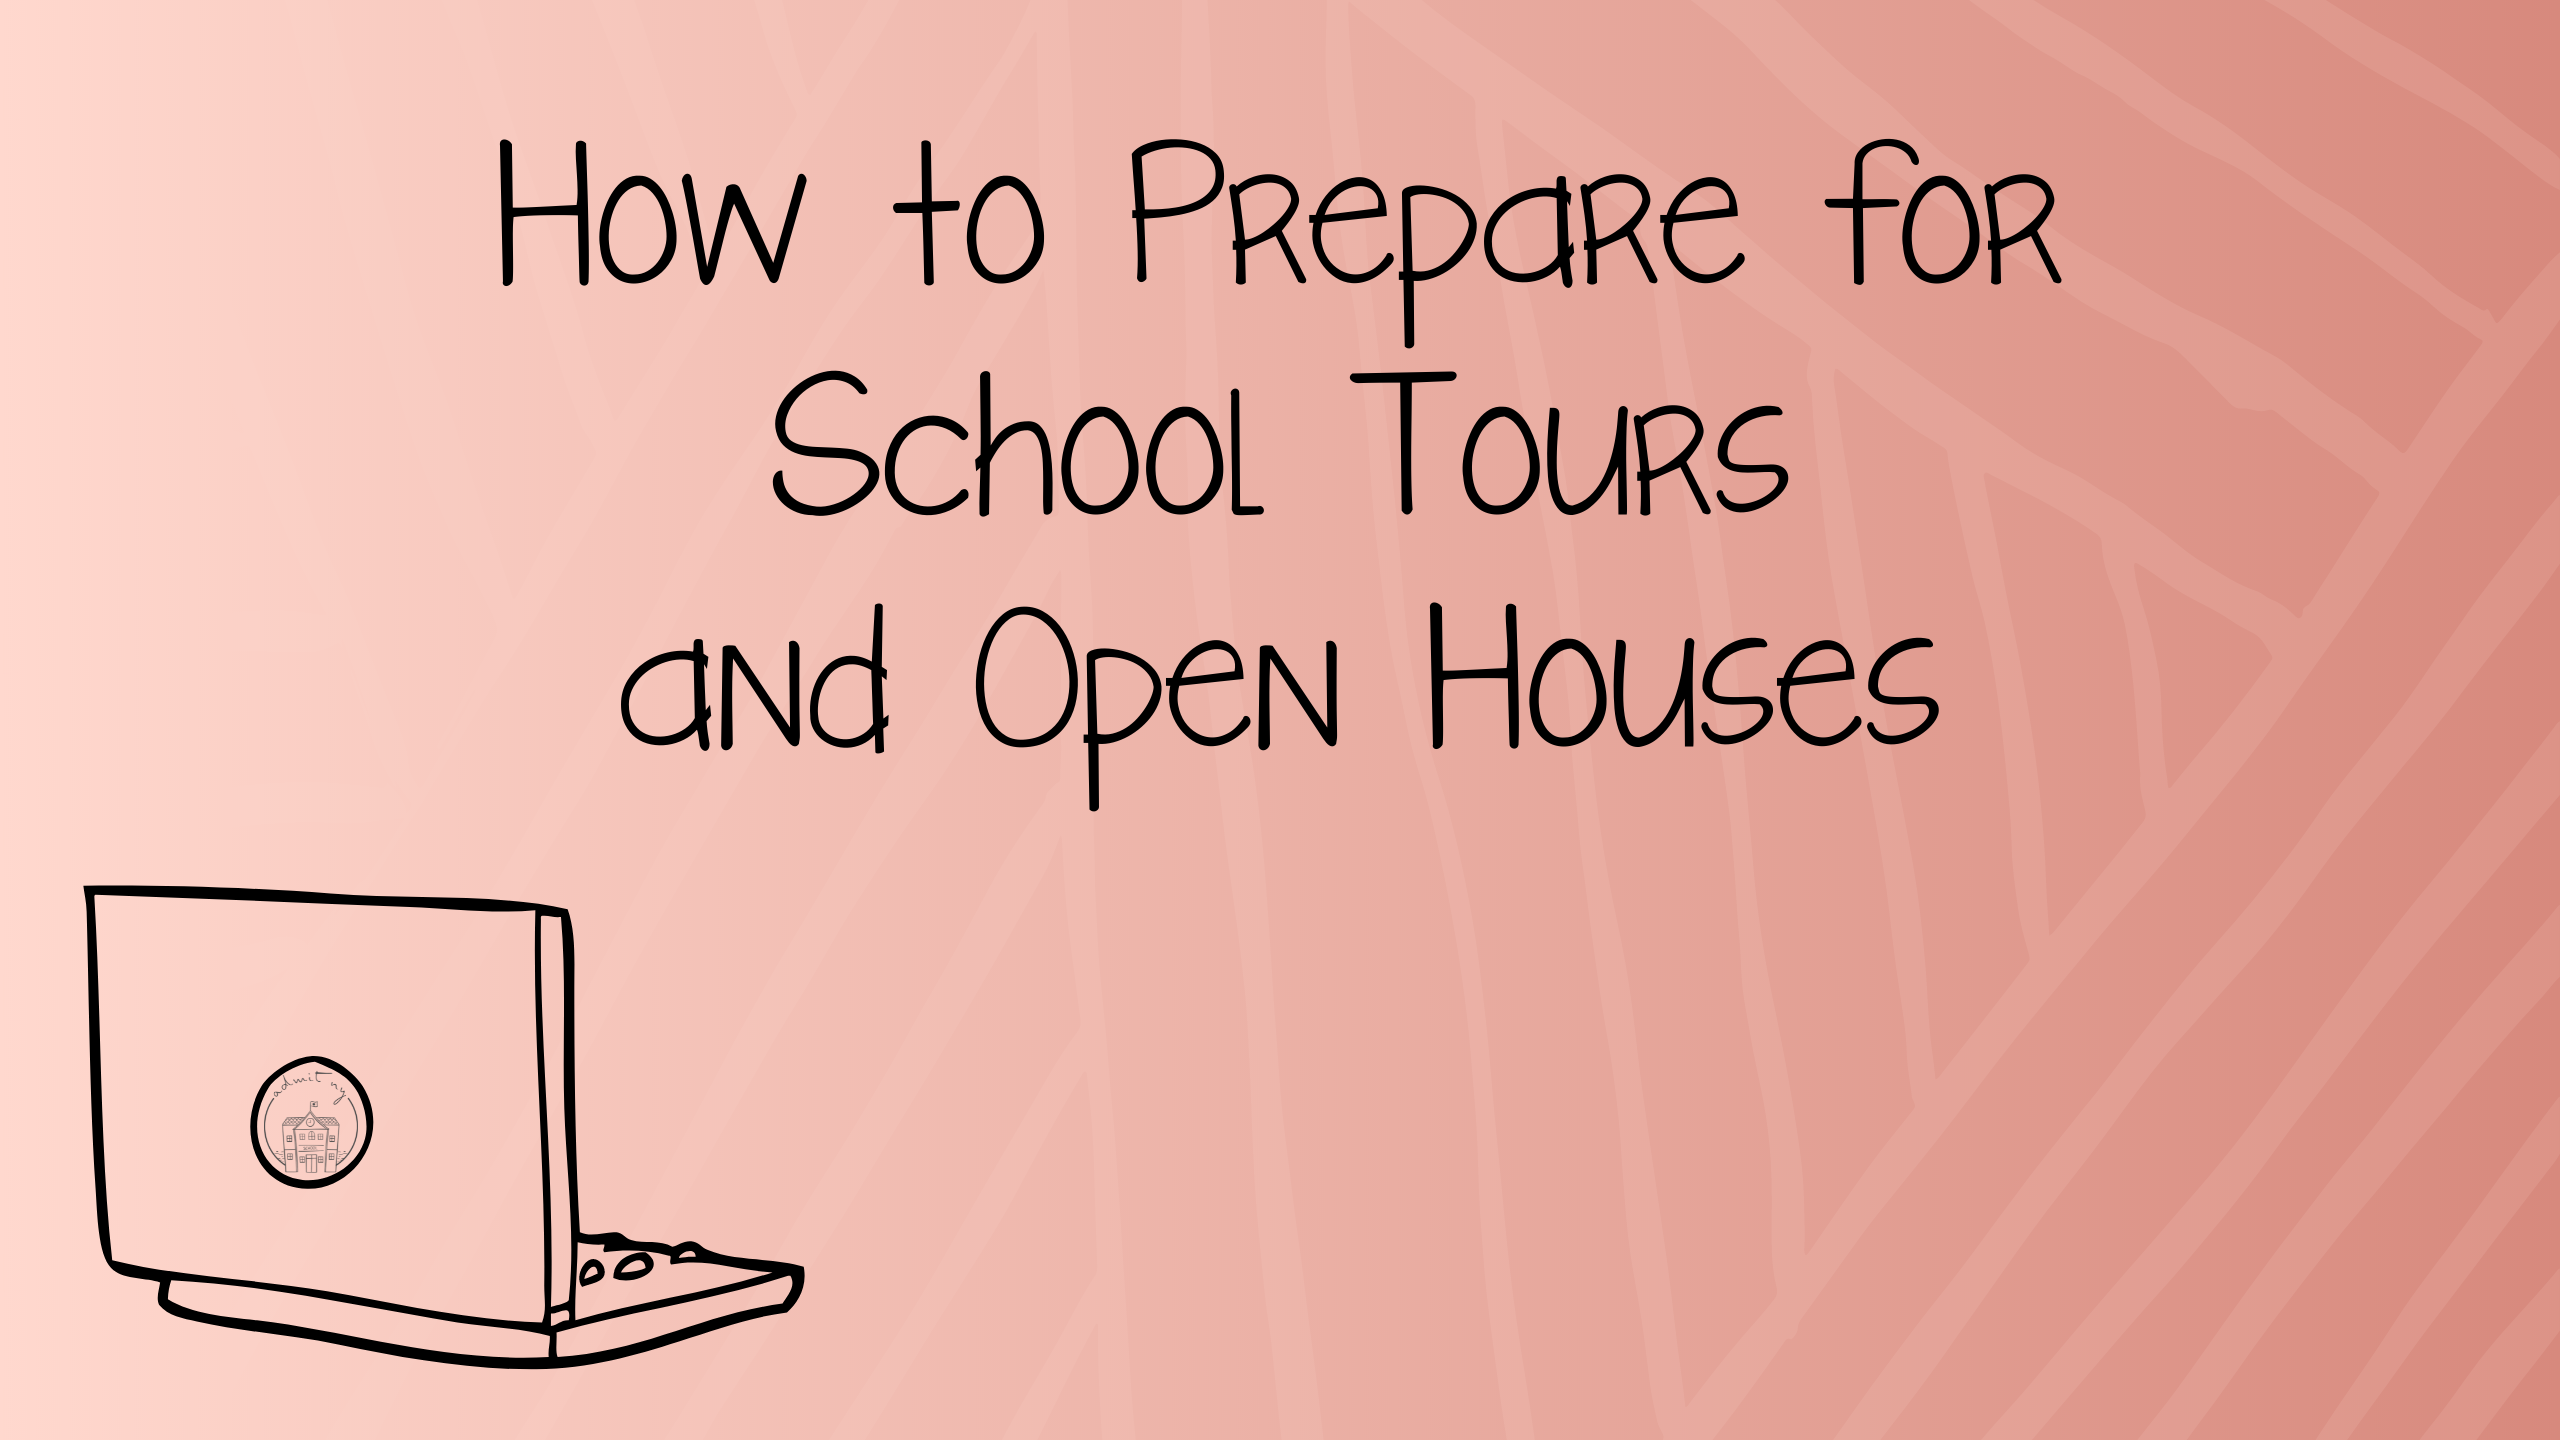 How to Prepare for School Tours and Open Houses